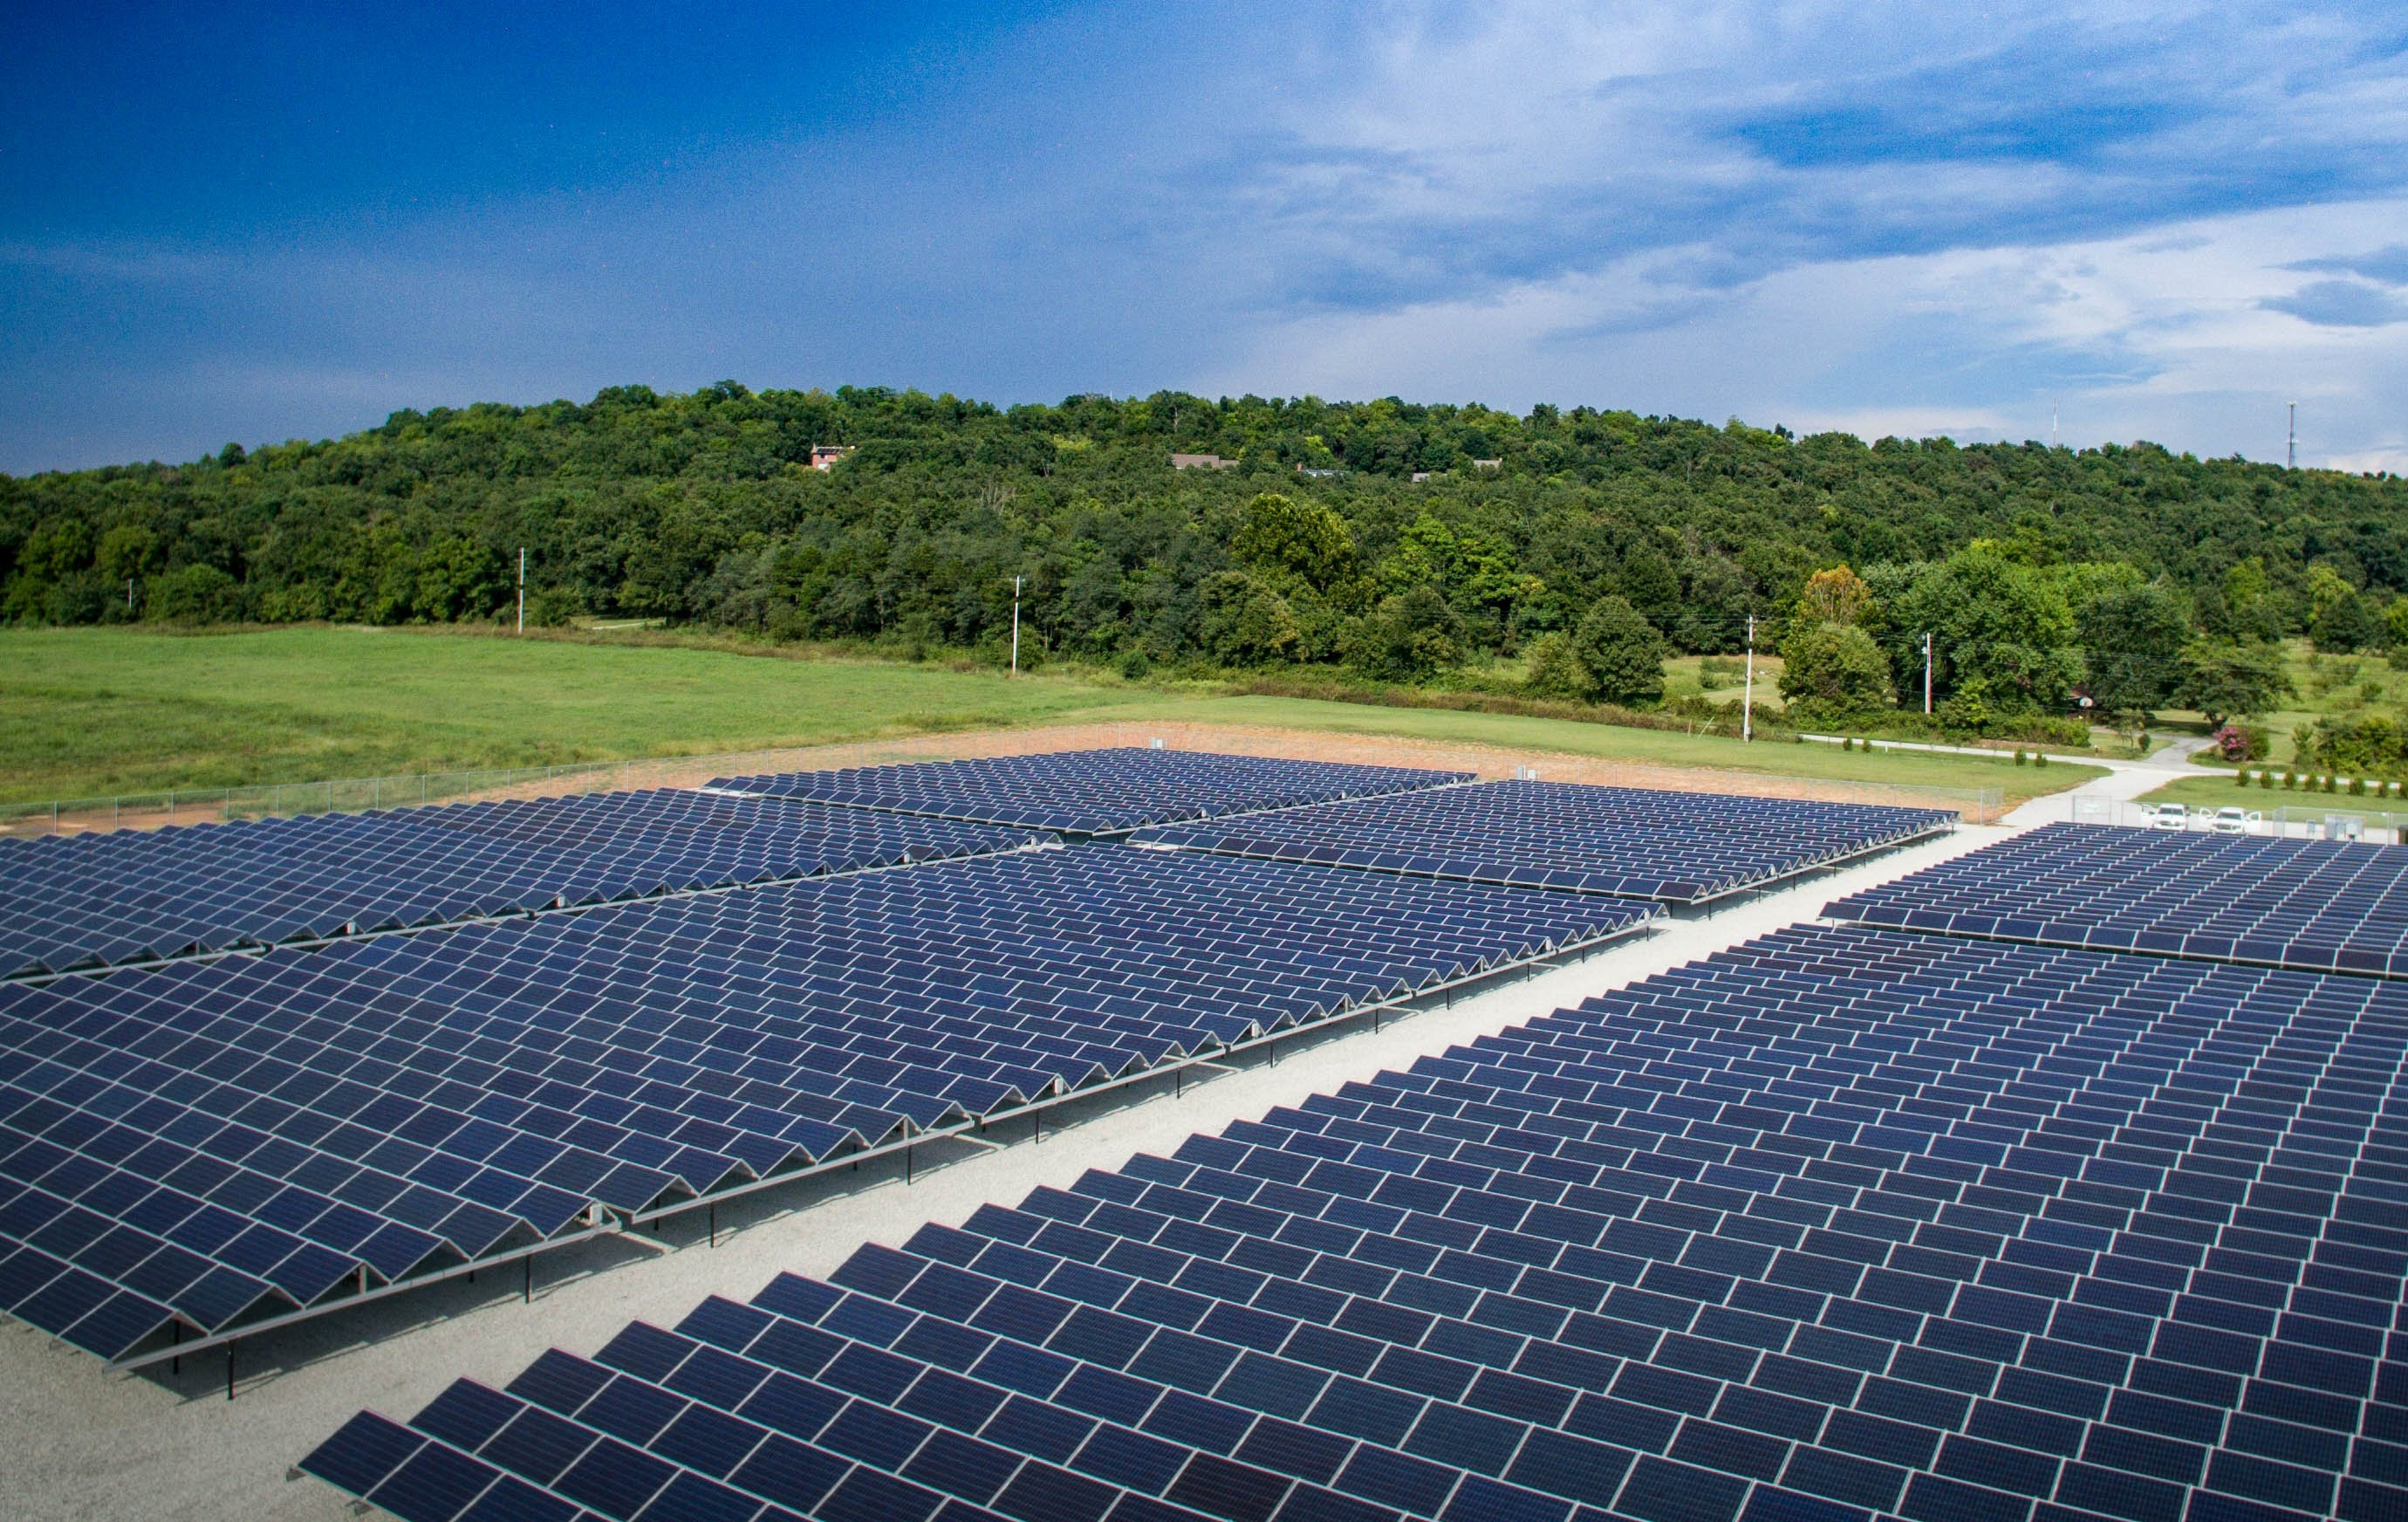 Nashville factory to become the first solar powered facility for Husqvarna Group